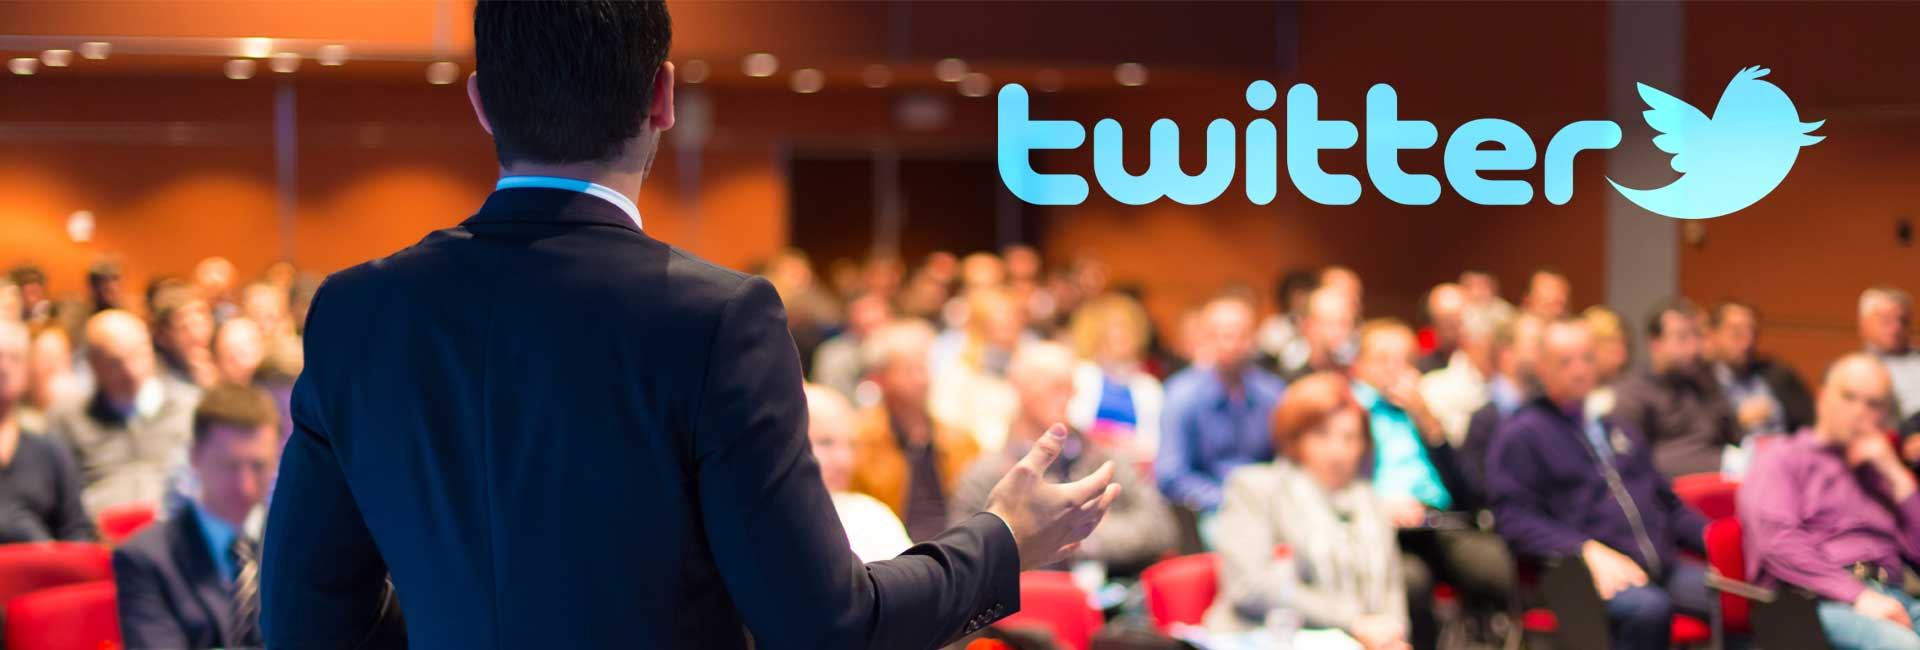 stream to twitter webcast company event streamed to twitter streaming to periscope professional webcast production in the uk